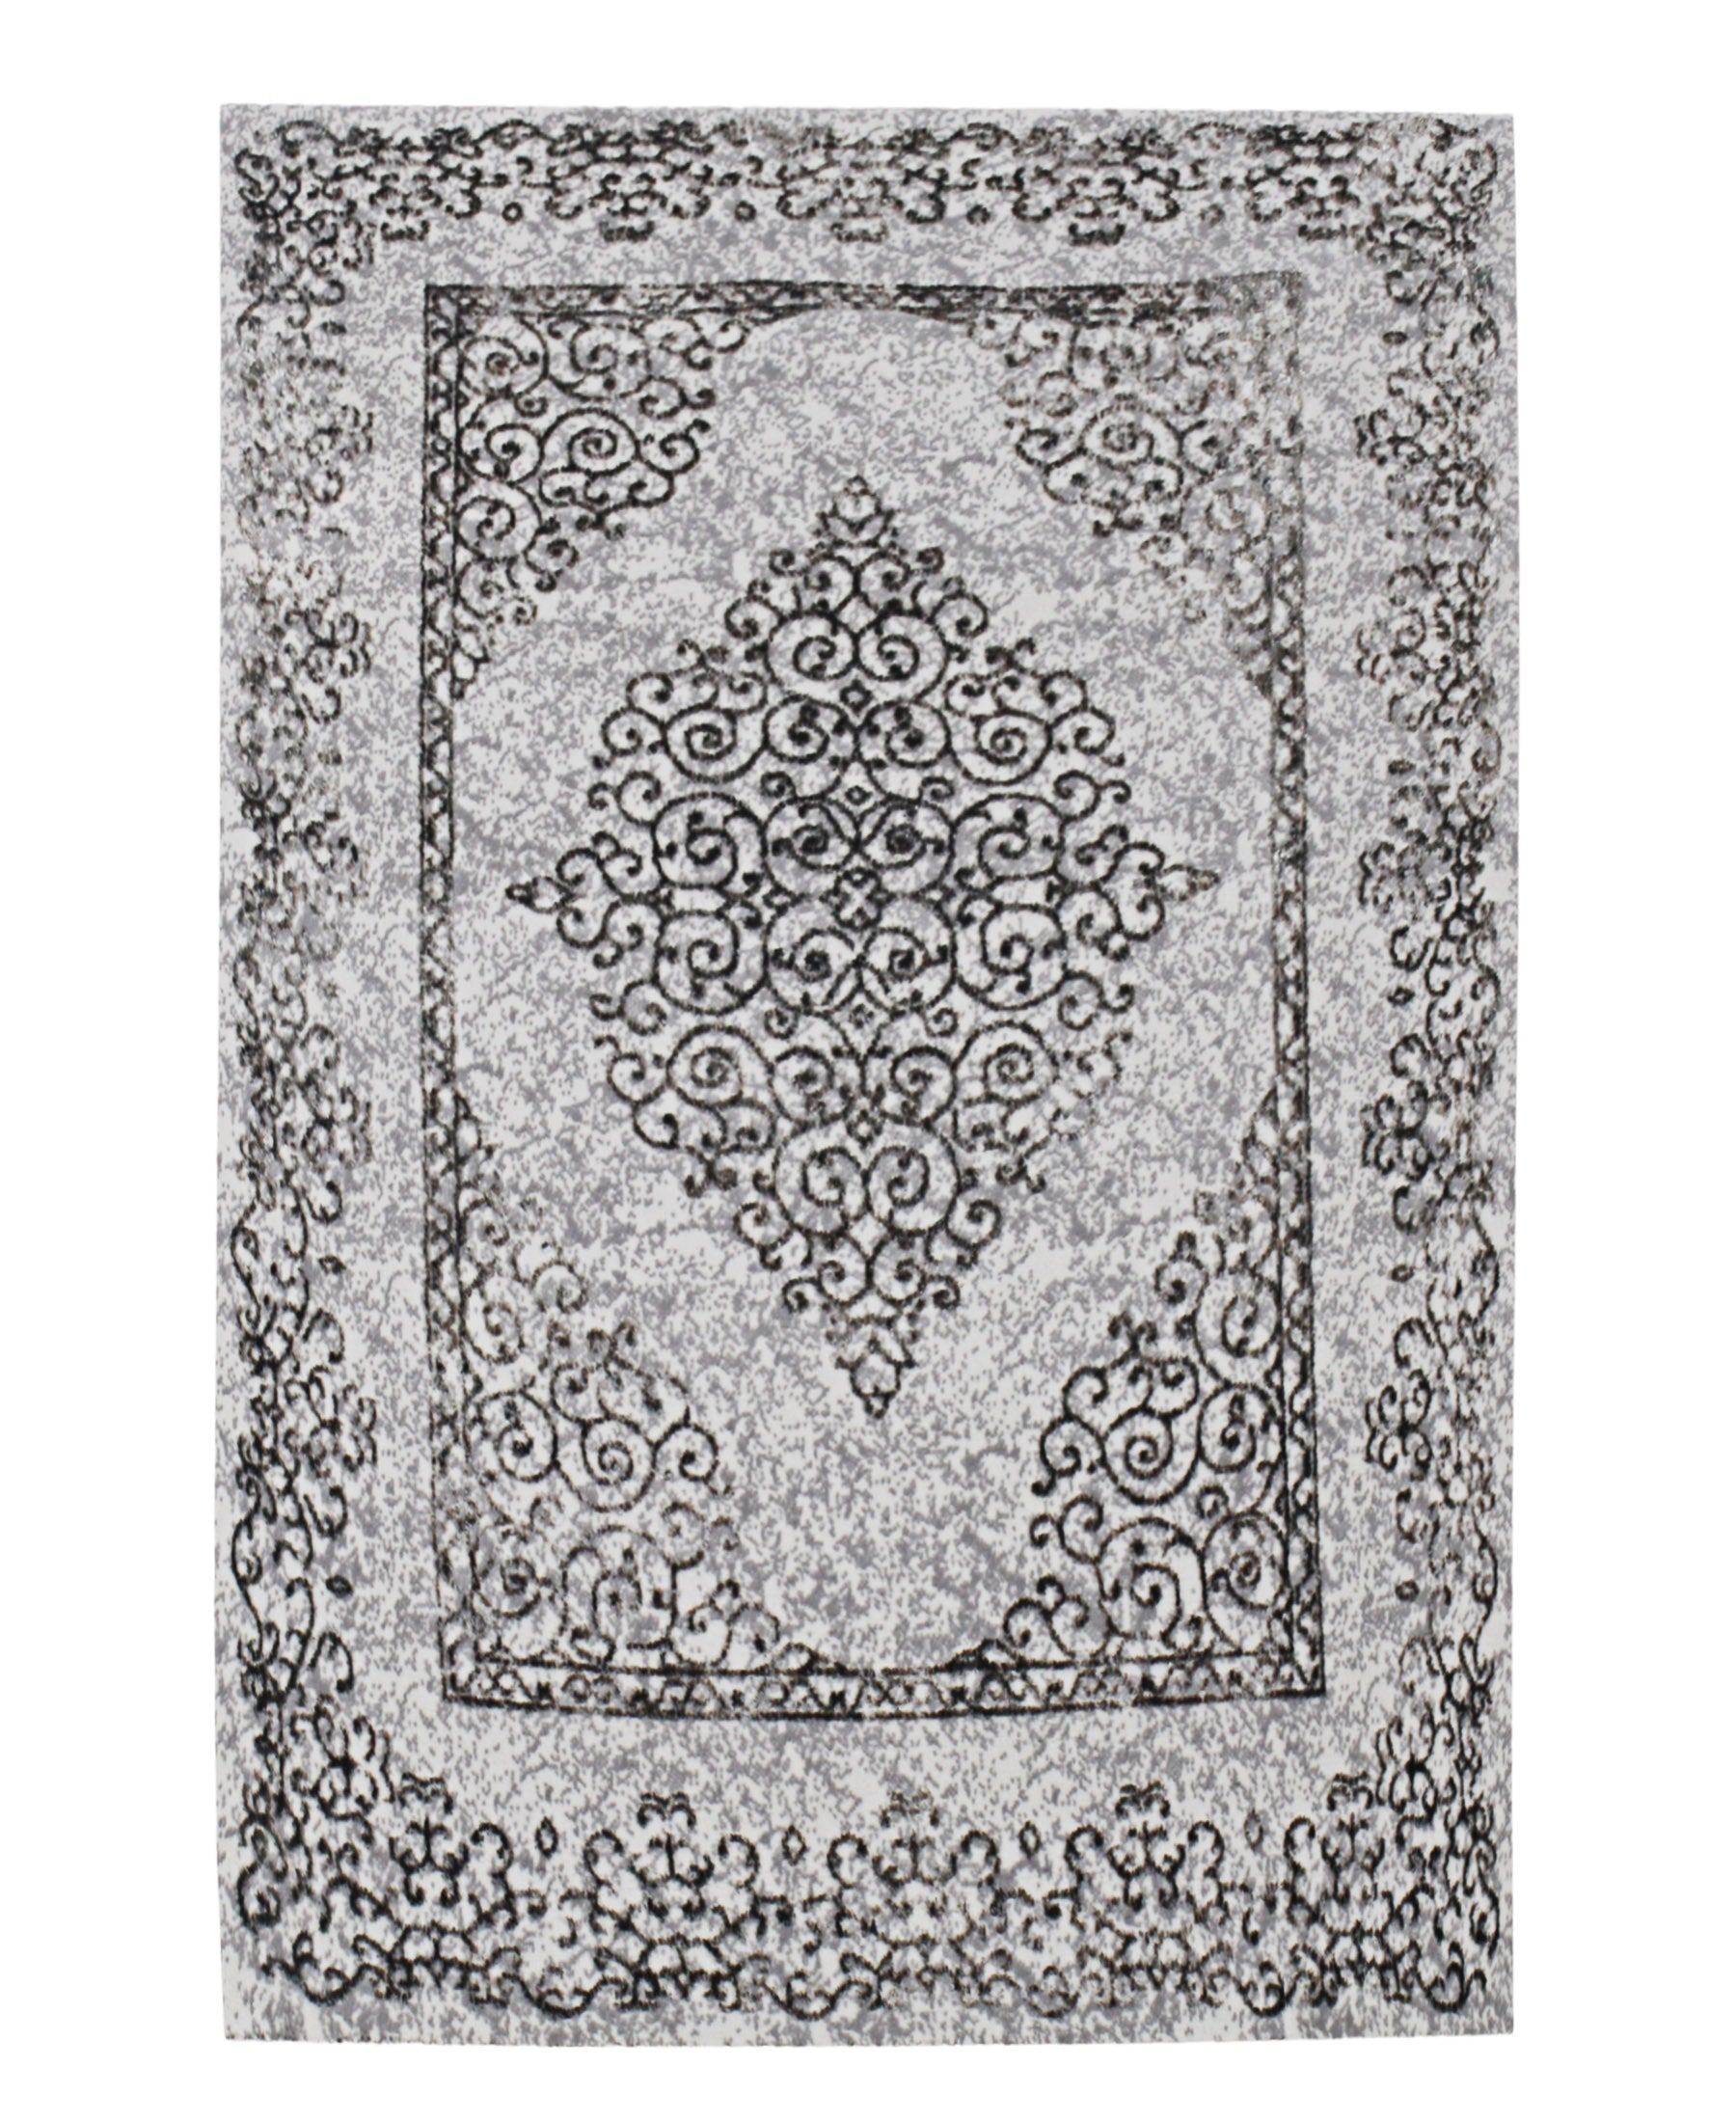 Bodrum Classic Carpet 500mm X 800mm - Dark Grey